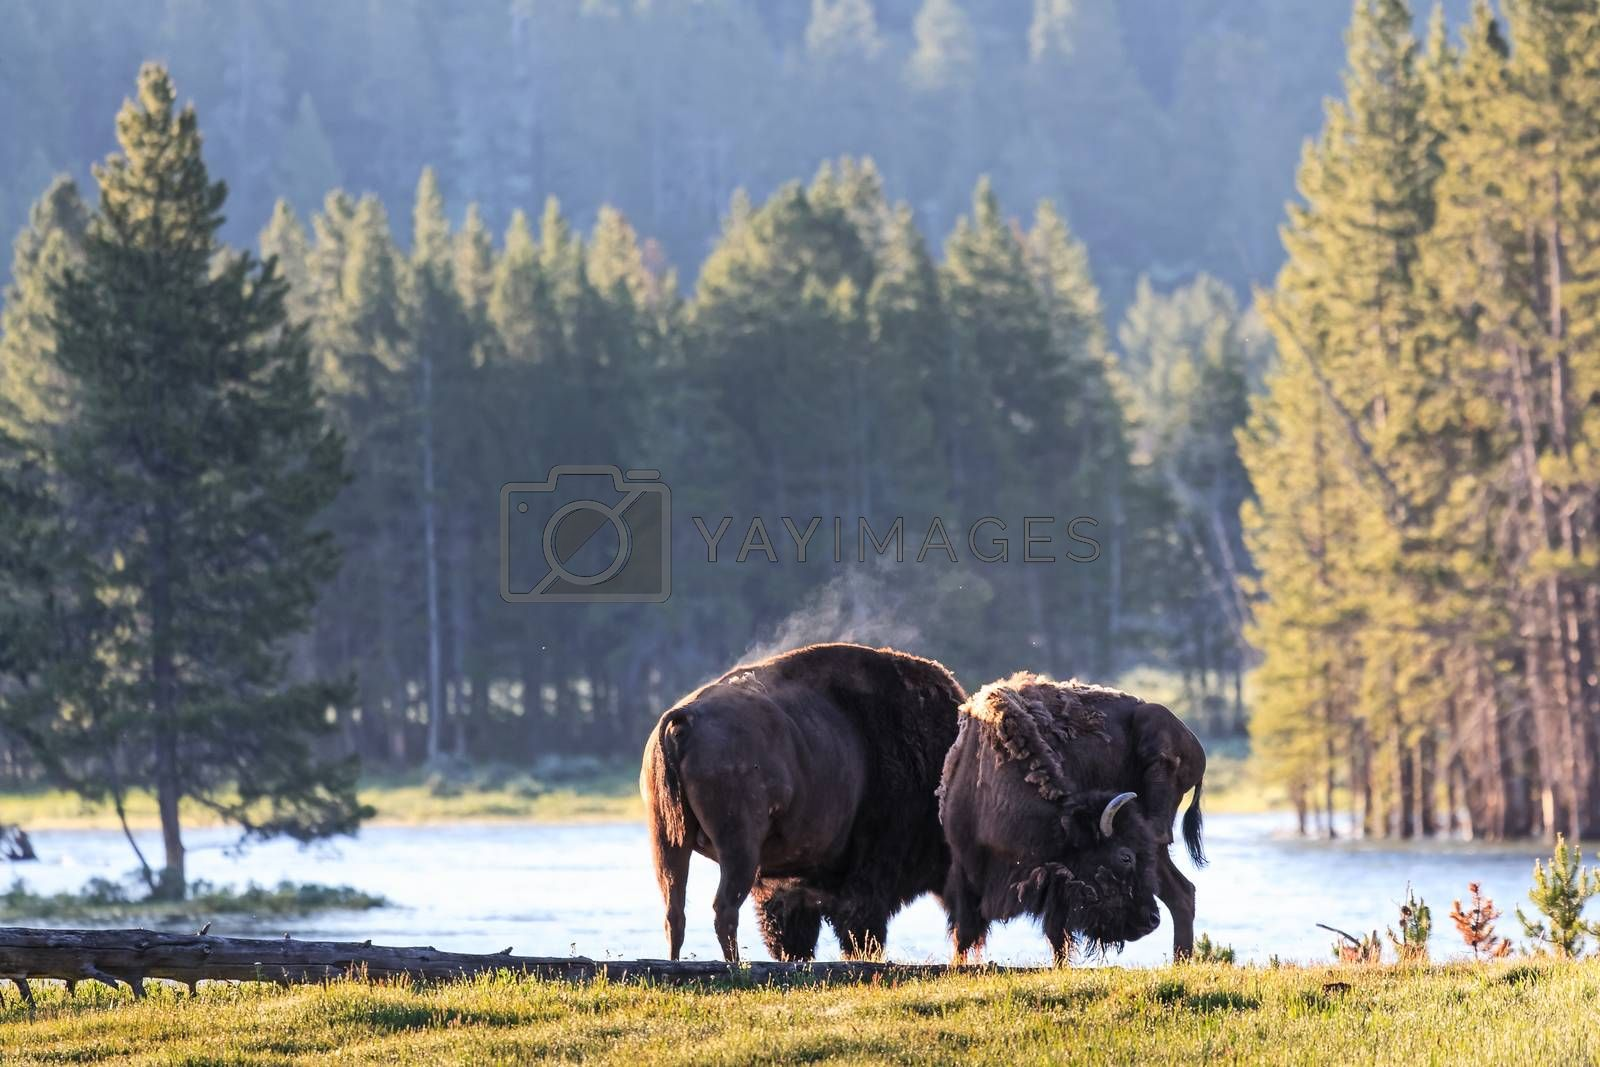 Genetically Pure Wild Bison in Colorado. Bison in a grass field.